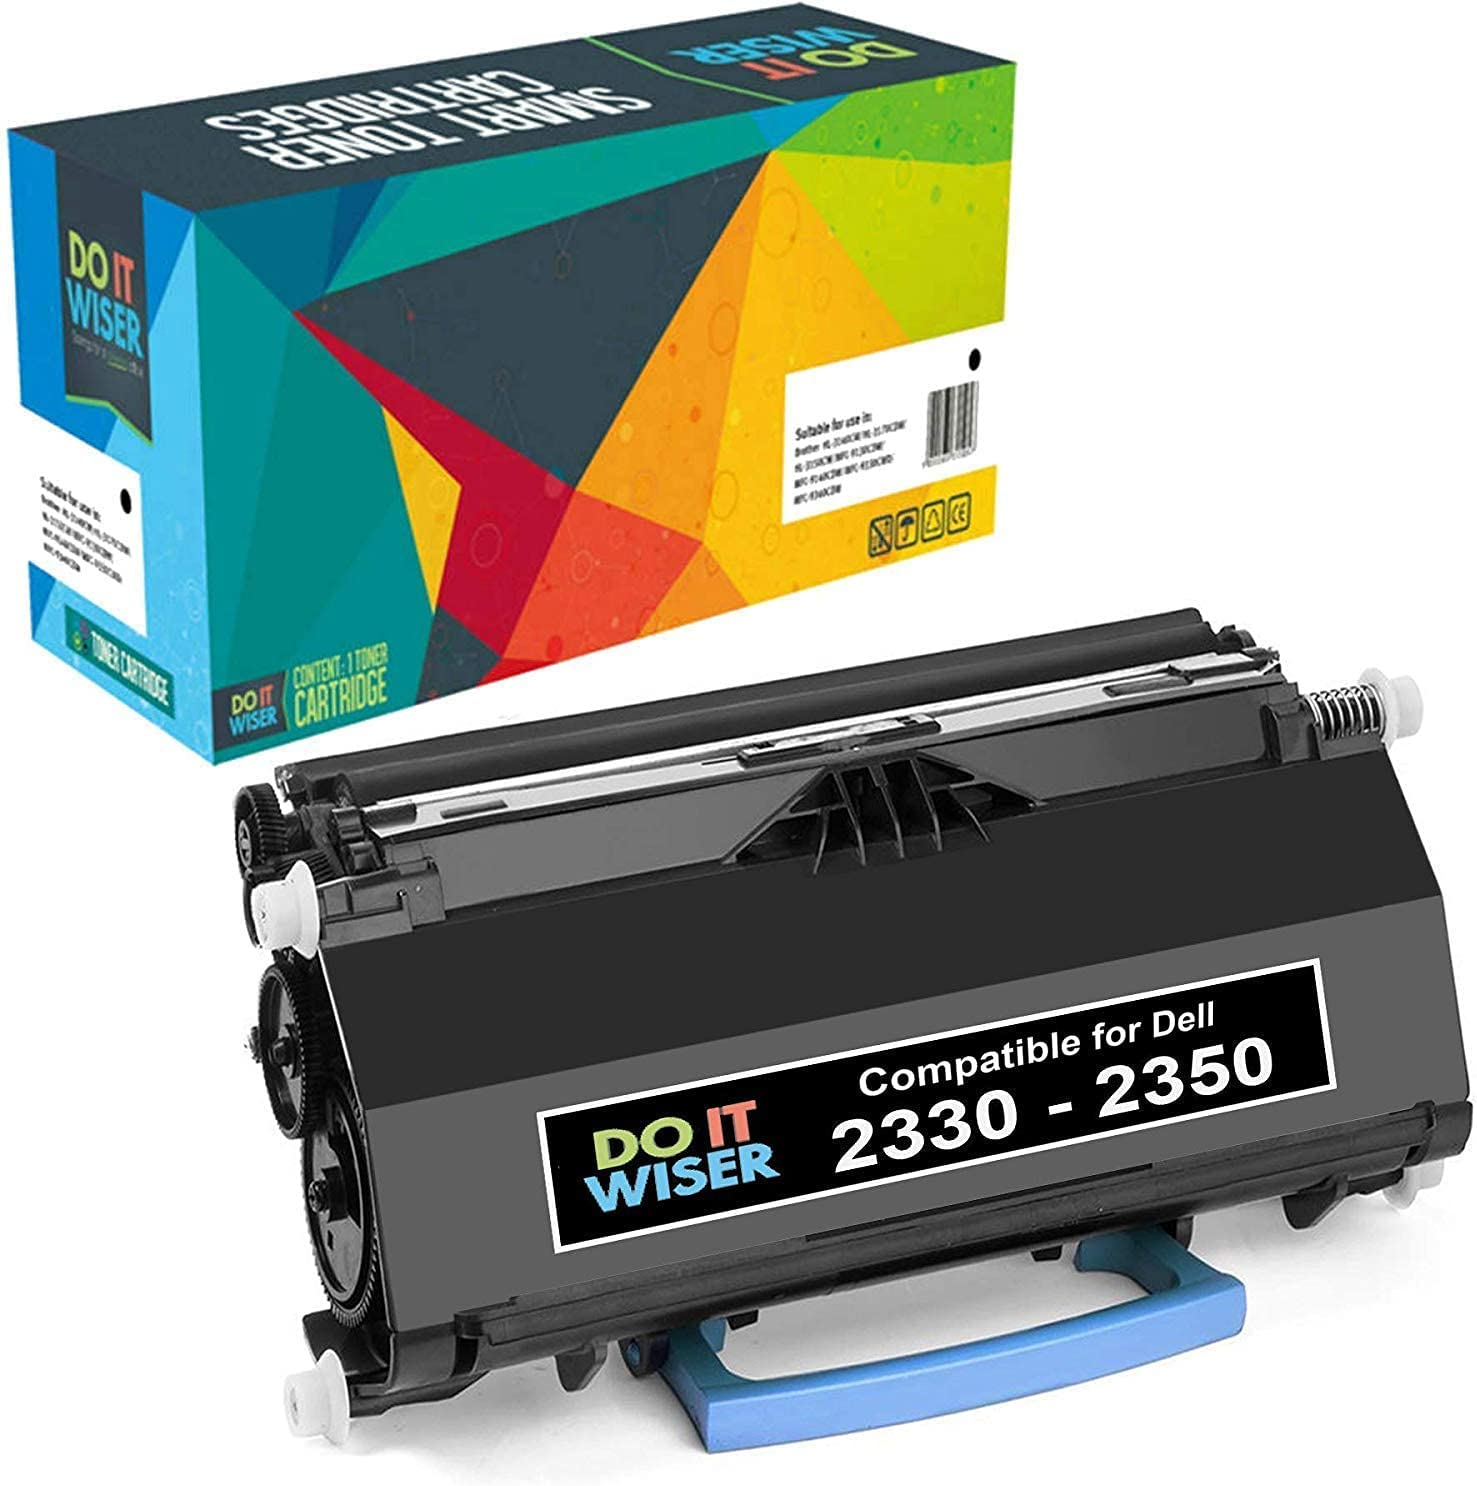 Do it Wiser Compatible Toner Cartridge Replacement for Dell PK941 Dell 2350DN 2330DN 2330D 2330DTN 2330 2350D 2350 Printer (Black - 6,000 Pages)